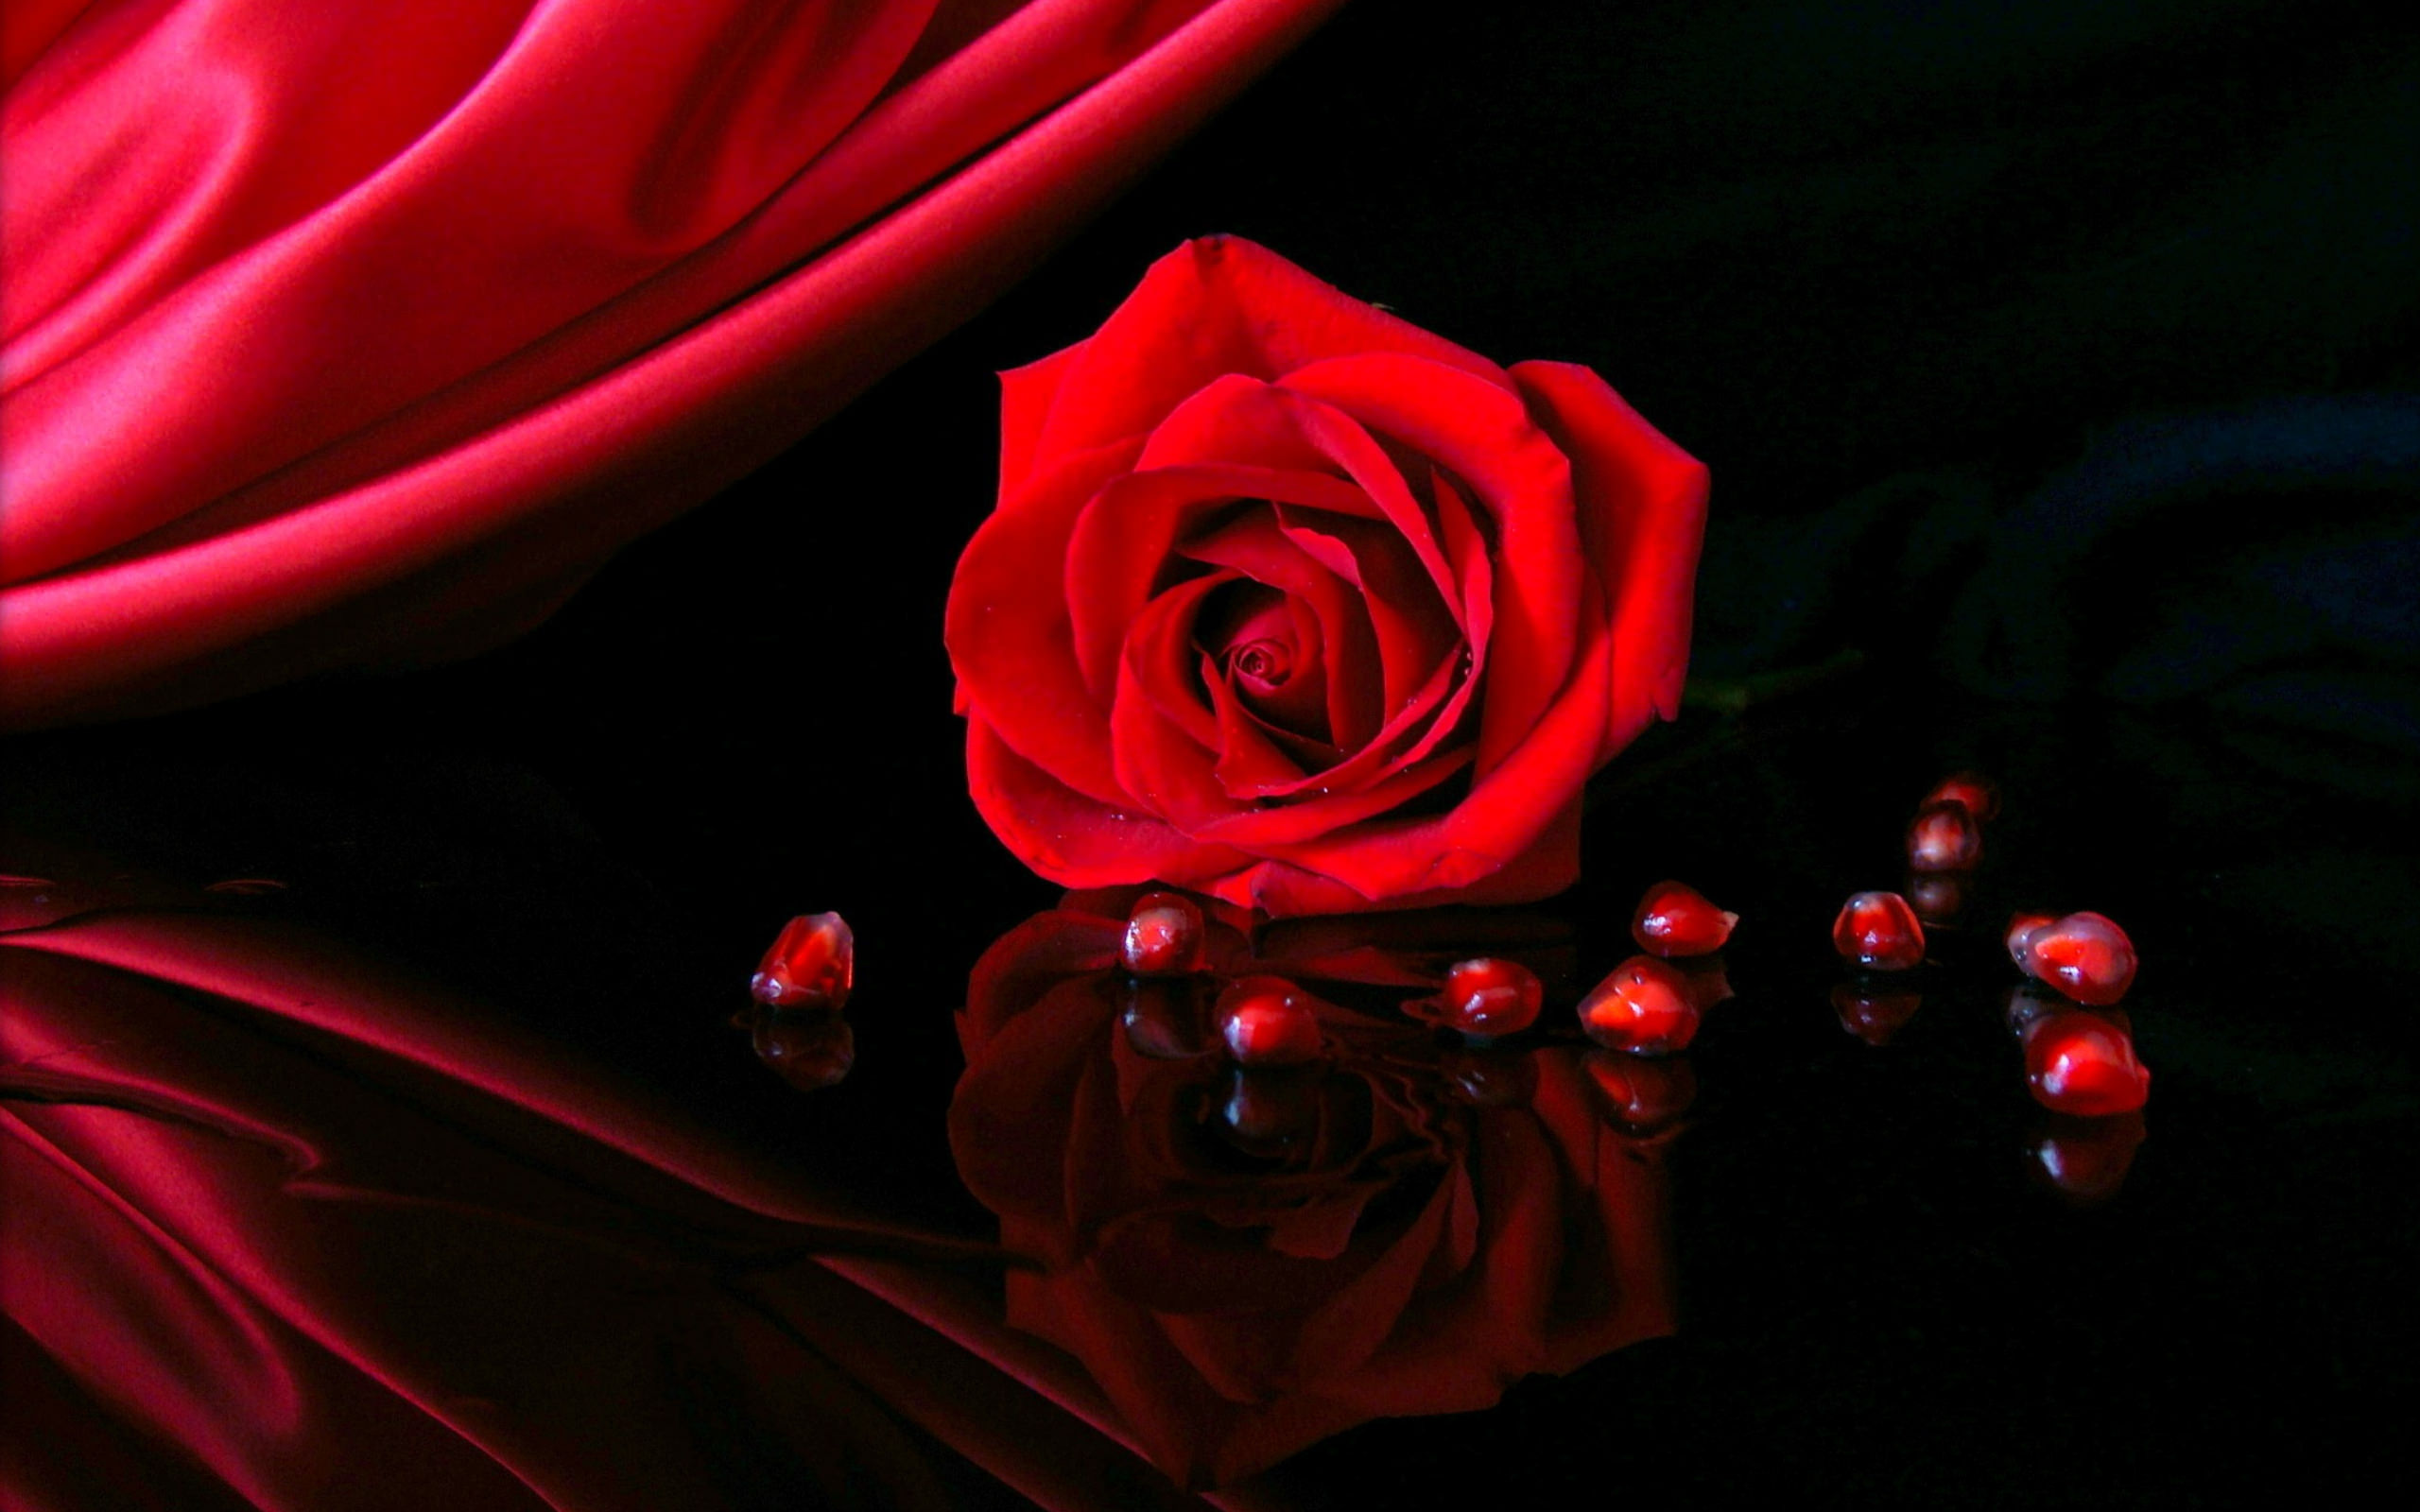 Free Download 25 Roses Background Wallpapers Images Pictures 2560x1600 For Your Desktop Mobile Tablet Explore 69 Red Rose On Black Background Black Roses Wallpaper Black And White Rose Wallpaper